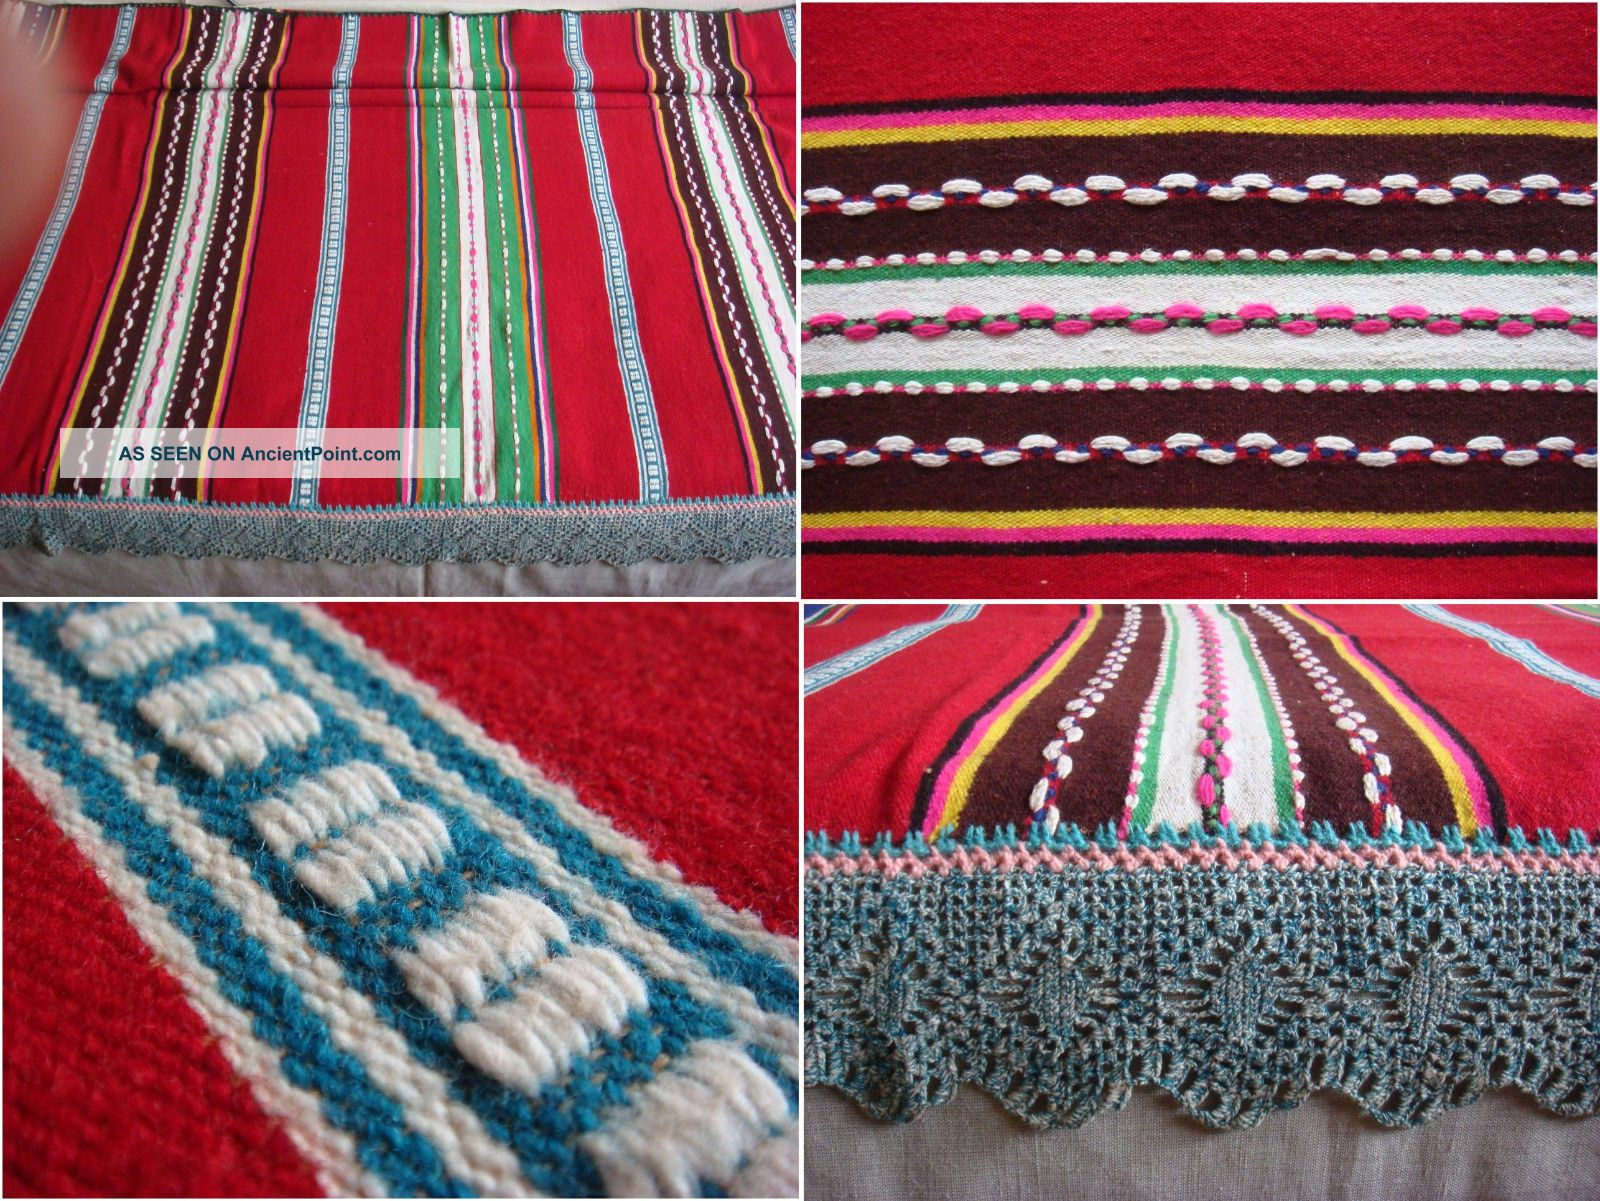 Wow Antique Macedonian Hand Woven Woolen Bedspread W/ Hand Croched Filet Lace Bedspreads & Coverlets photo